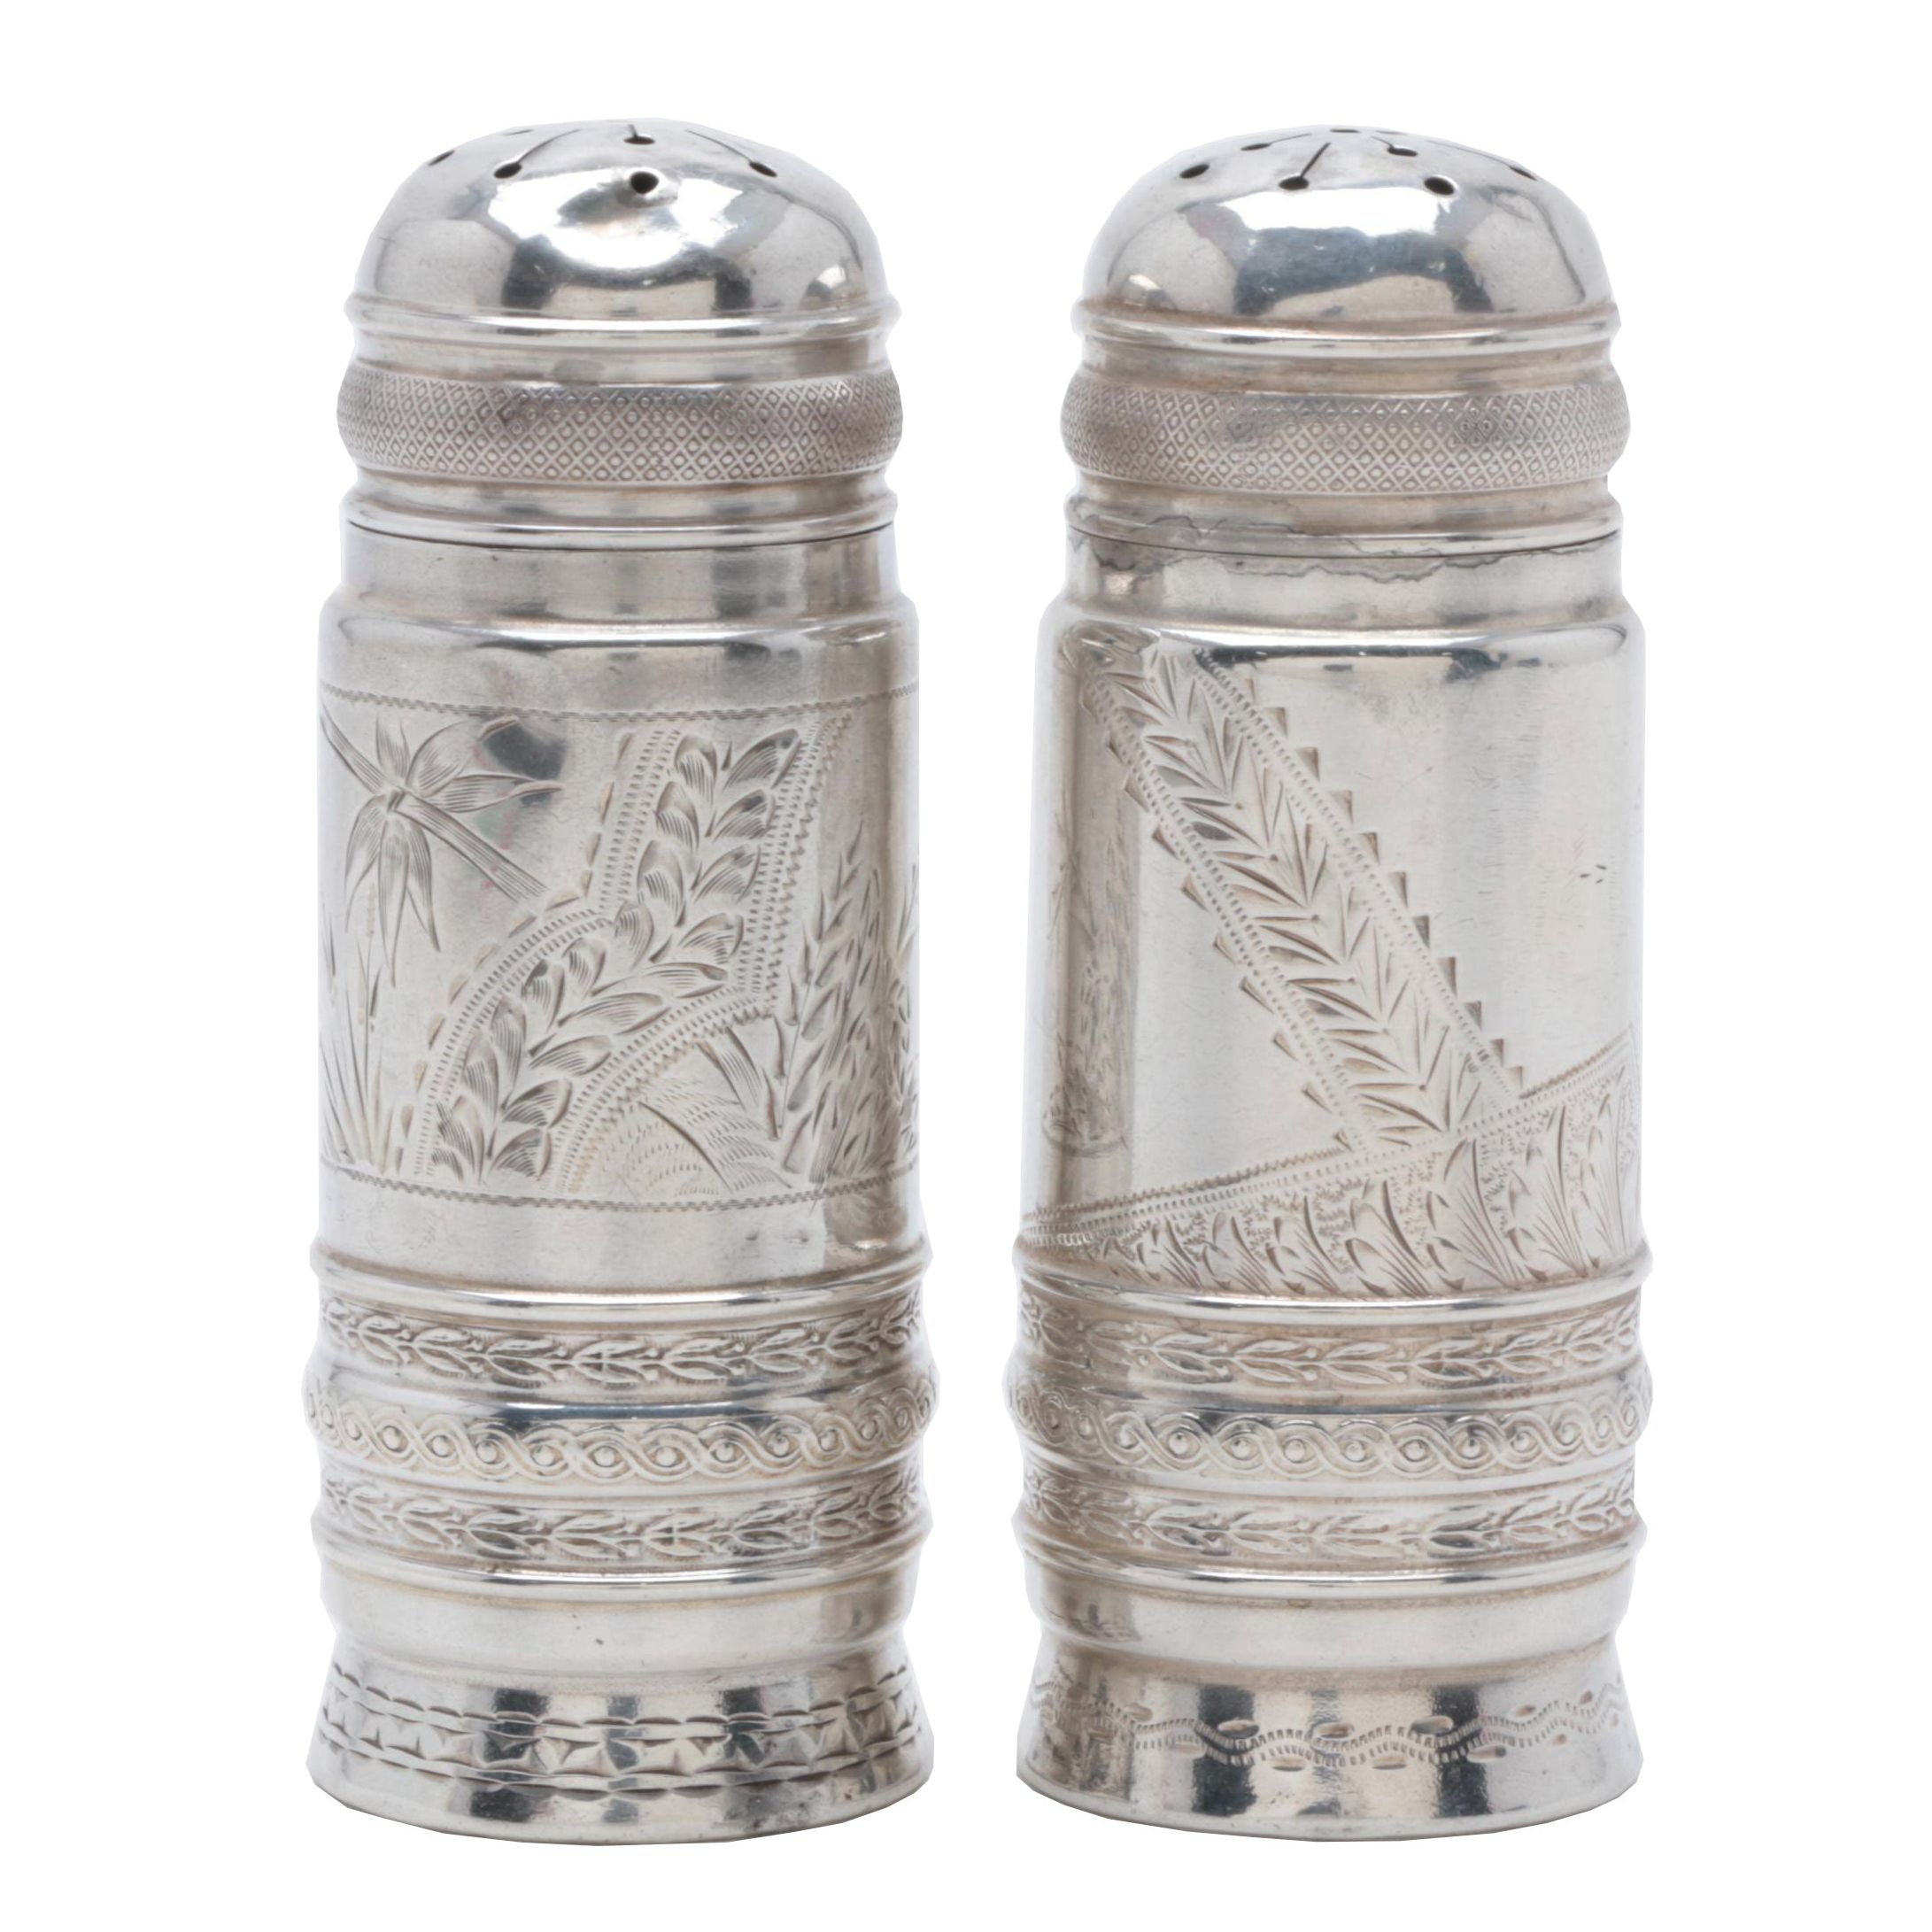 Gorham Sterling Silver Aesthetic Movement Salt and Pepper Shakers